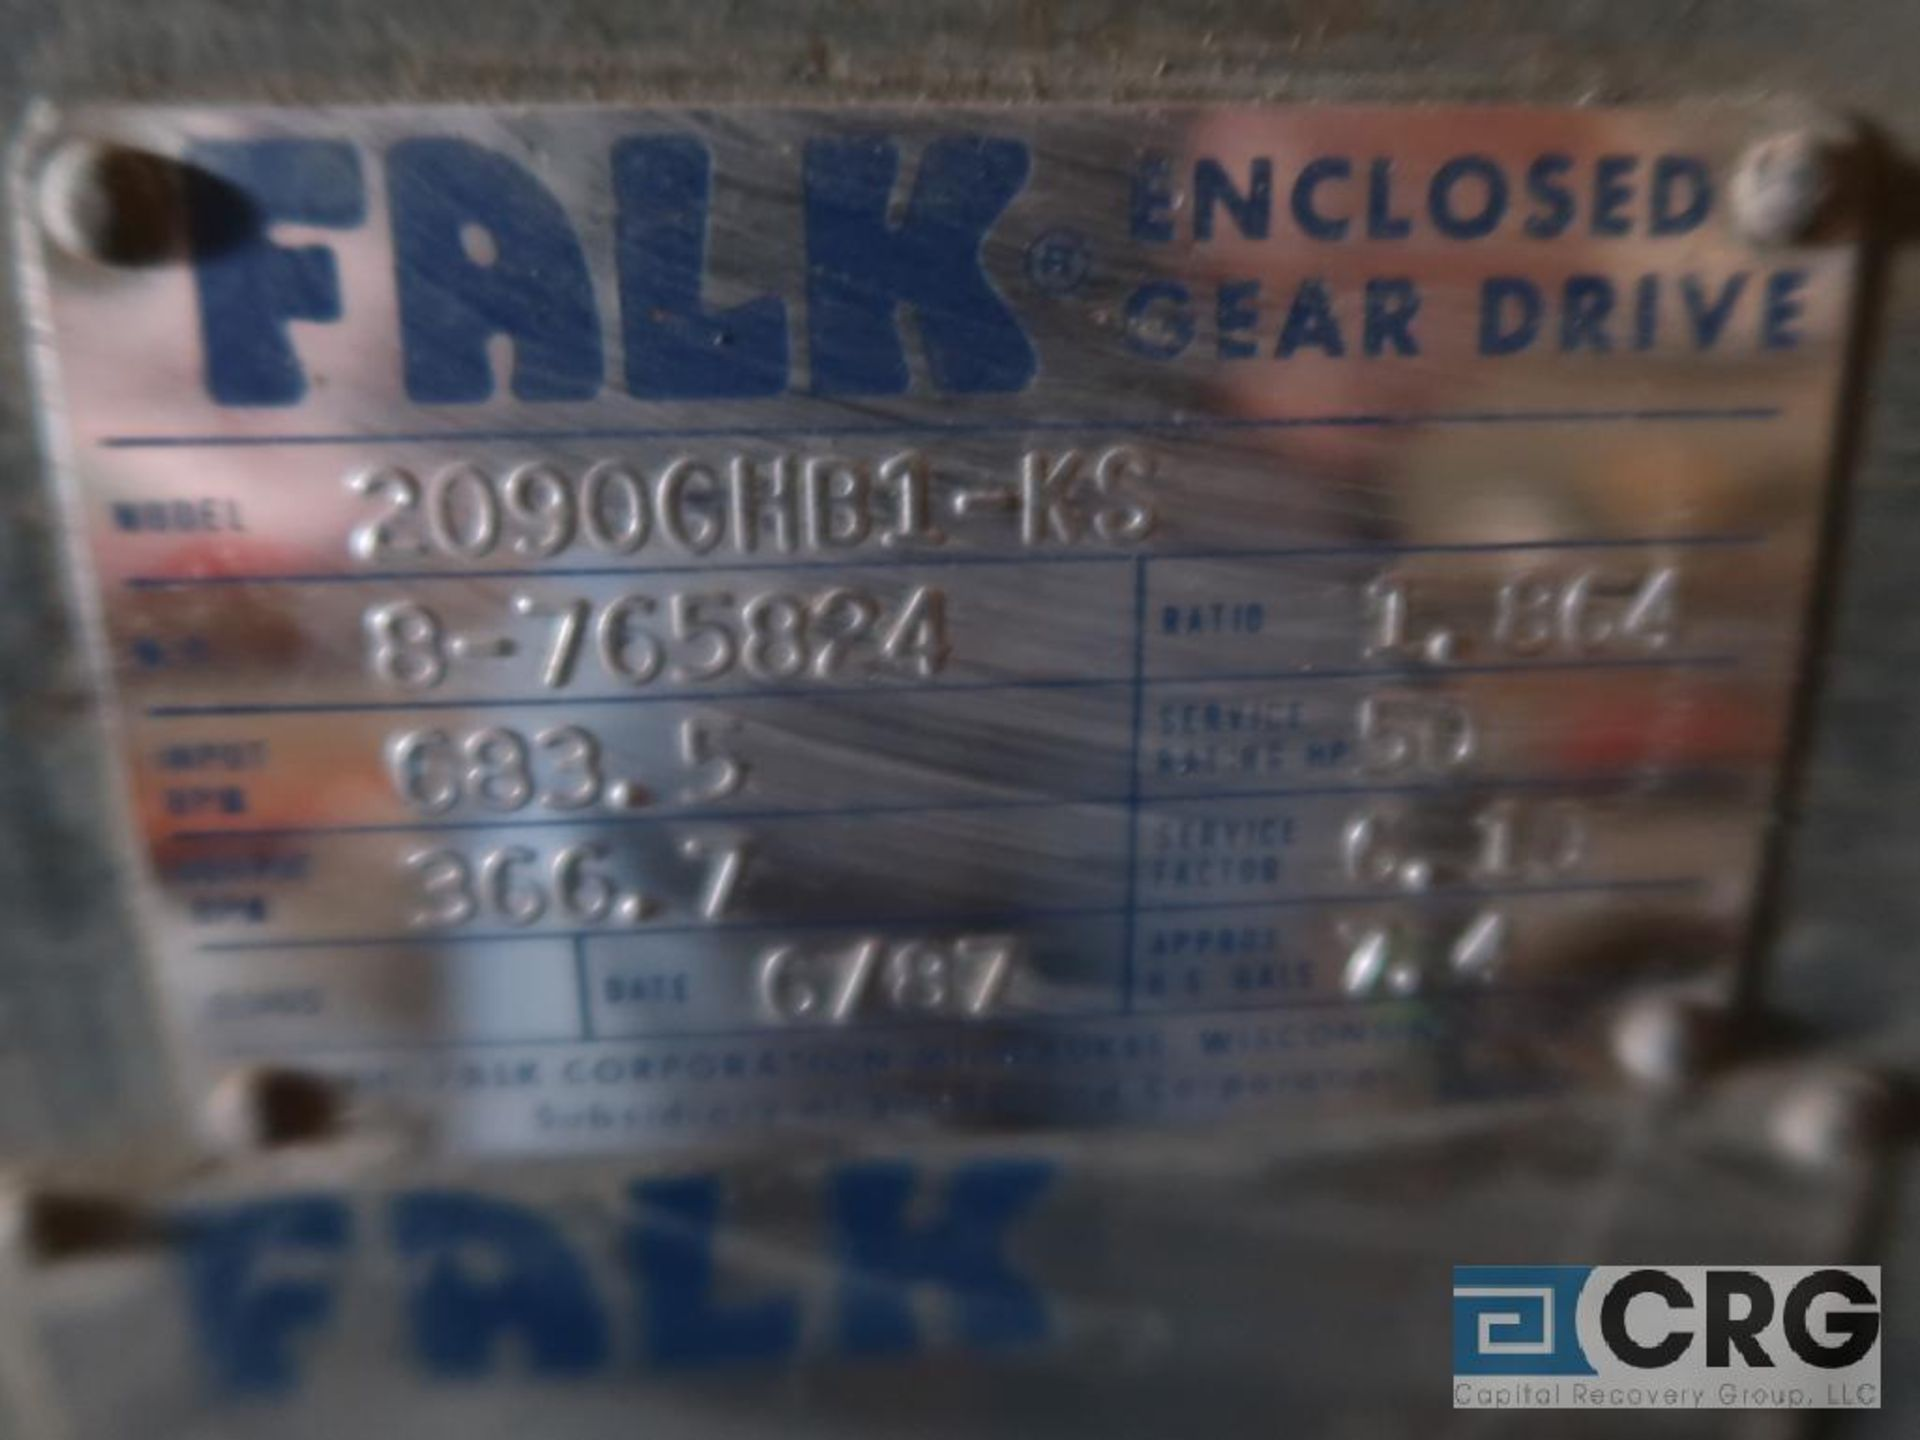 Falk 2090 GHB1KS gear drive, ratio-1.864, input RPM 683.5, output RPM366.7, service rate HP. 50, s/n - Image 2 of 2